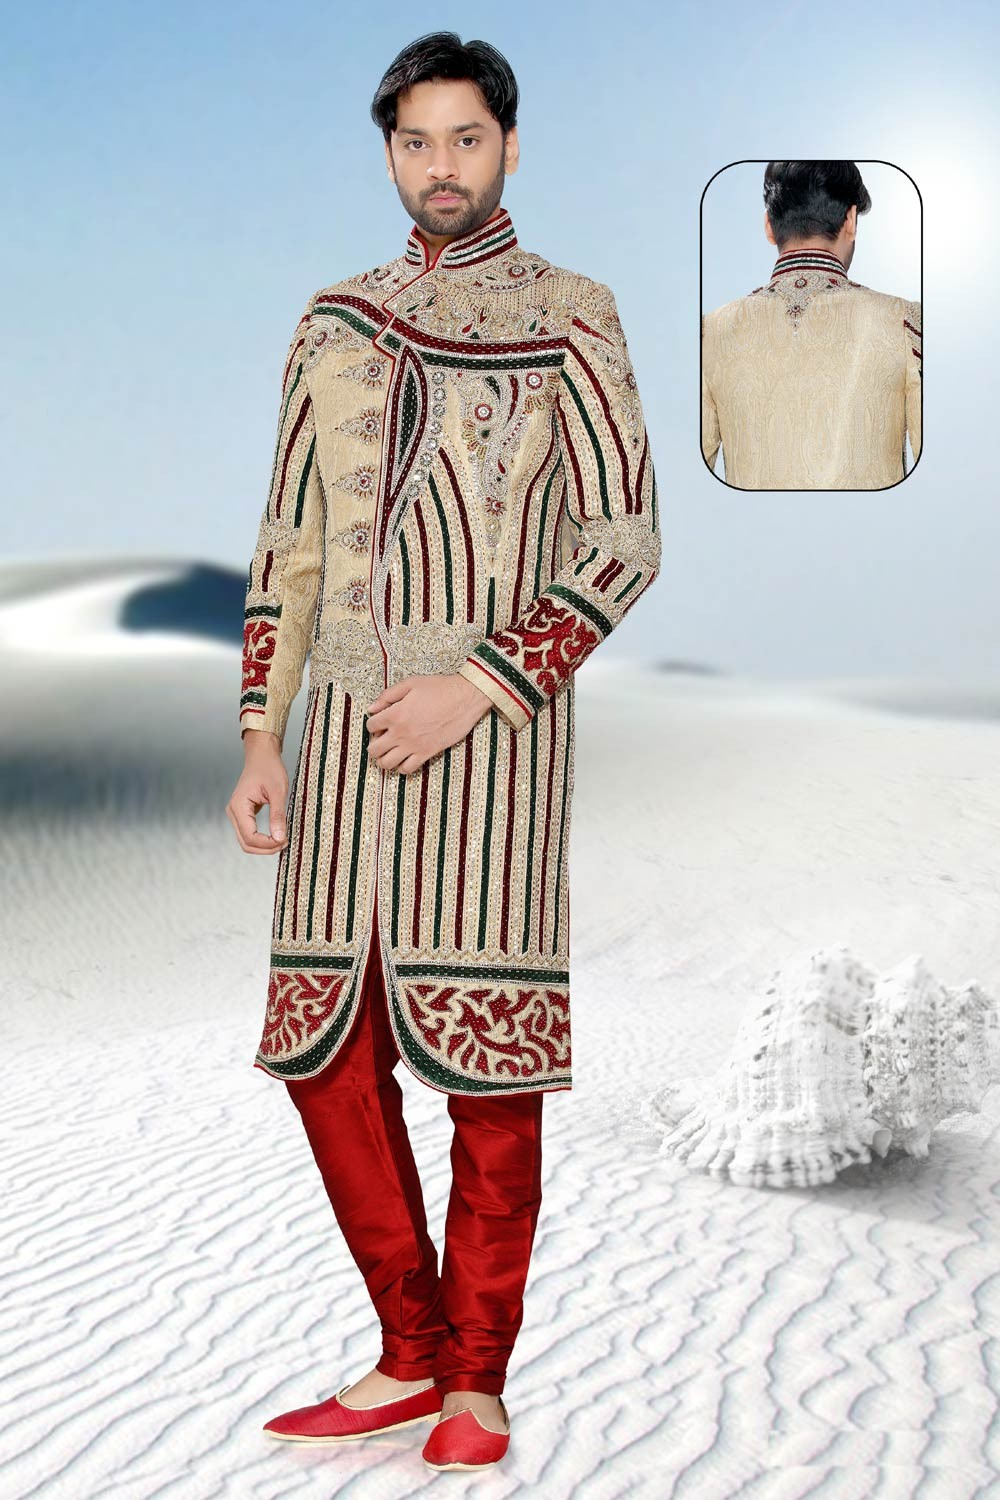 Buy Golden & Maroon Indian mens sherwani